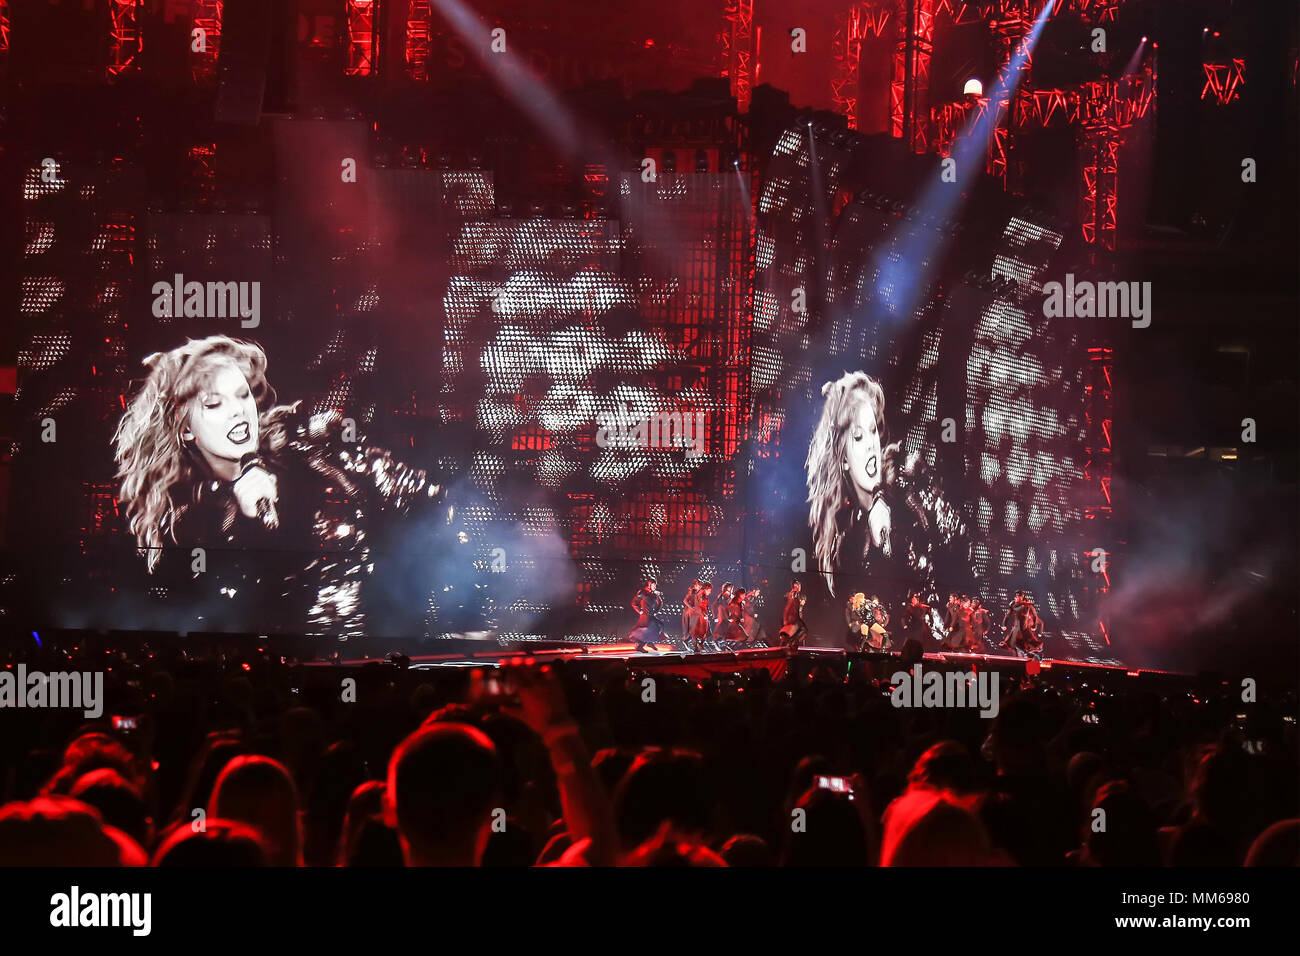 Taylor Swift During The Opening Show For Her Reputation Tour At The University Of Phoenix Stadium Glendale Arizona Stock Photo Alamy